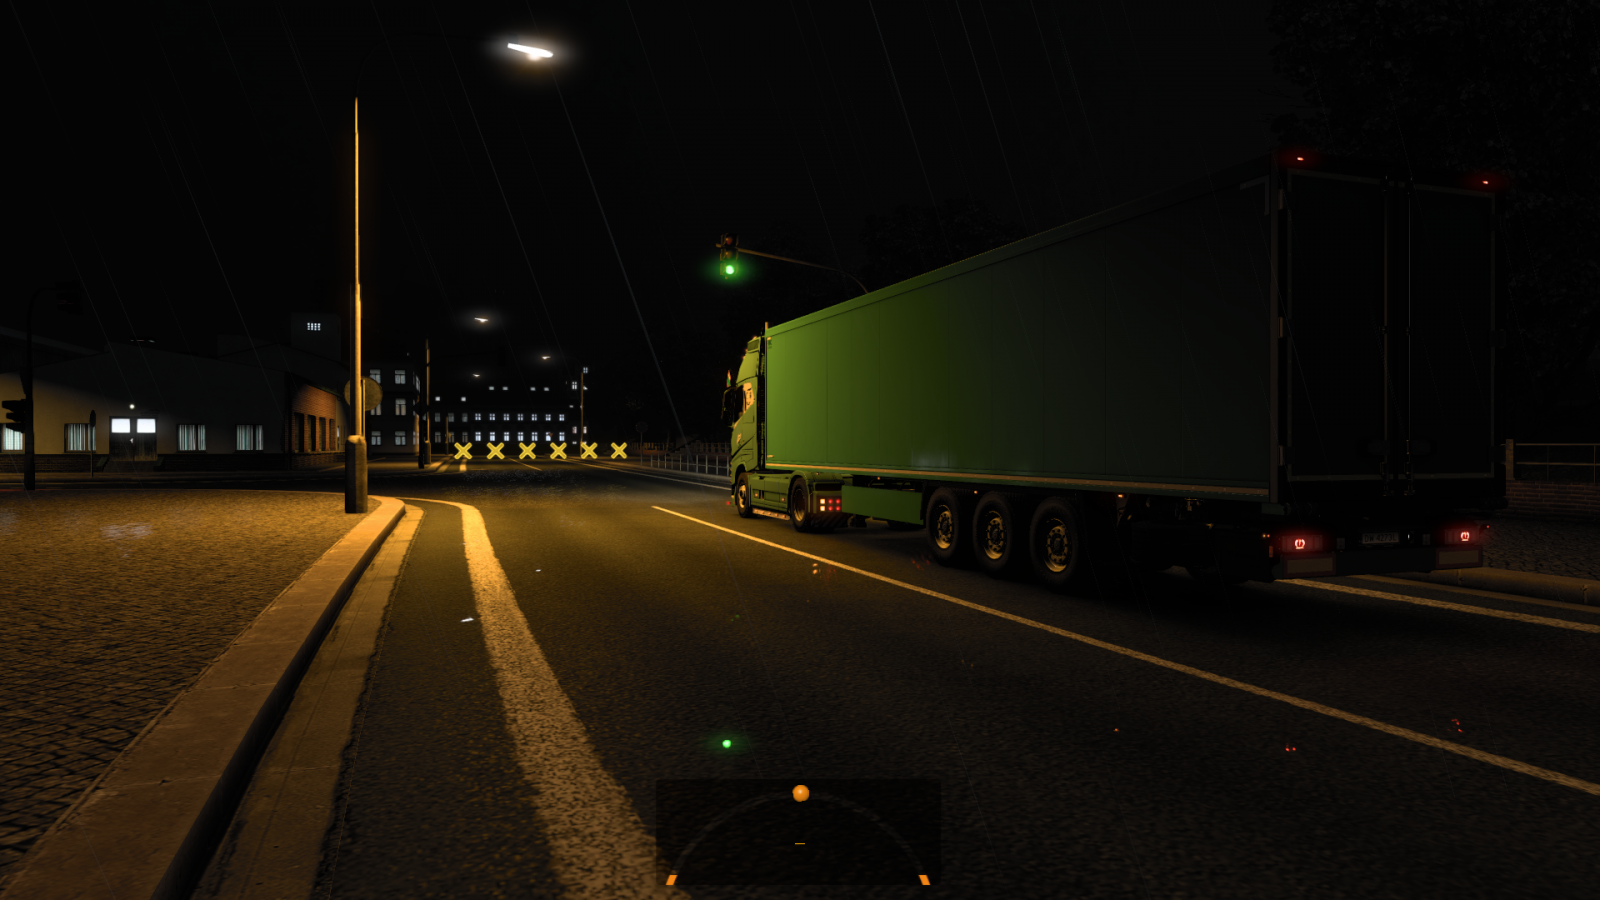 ets2_20210608_142439_00.png